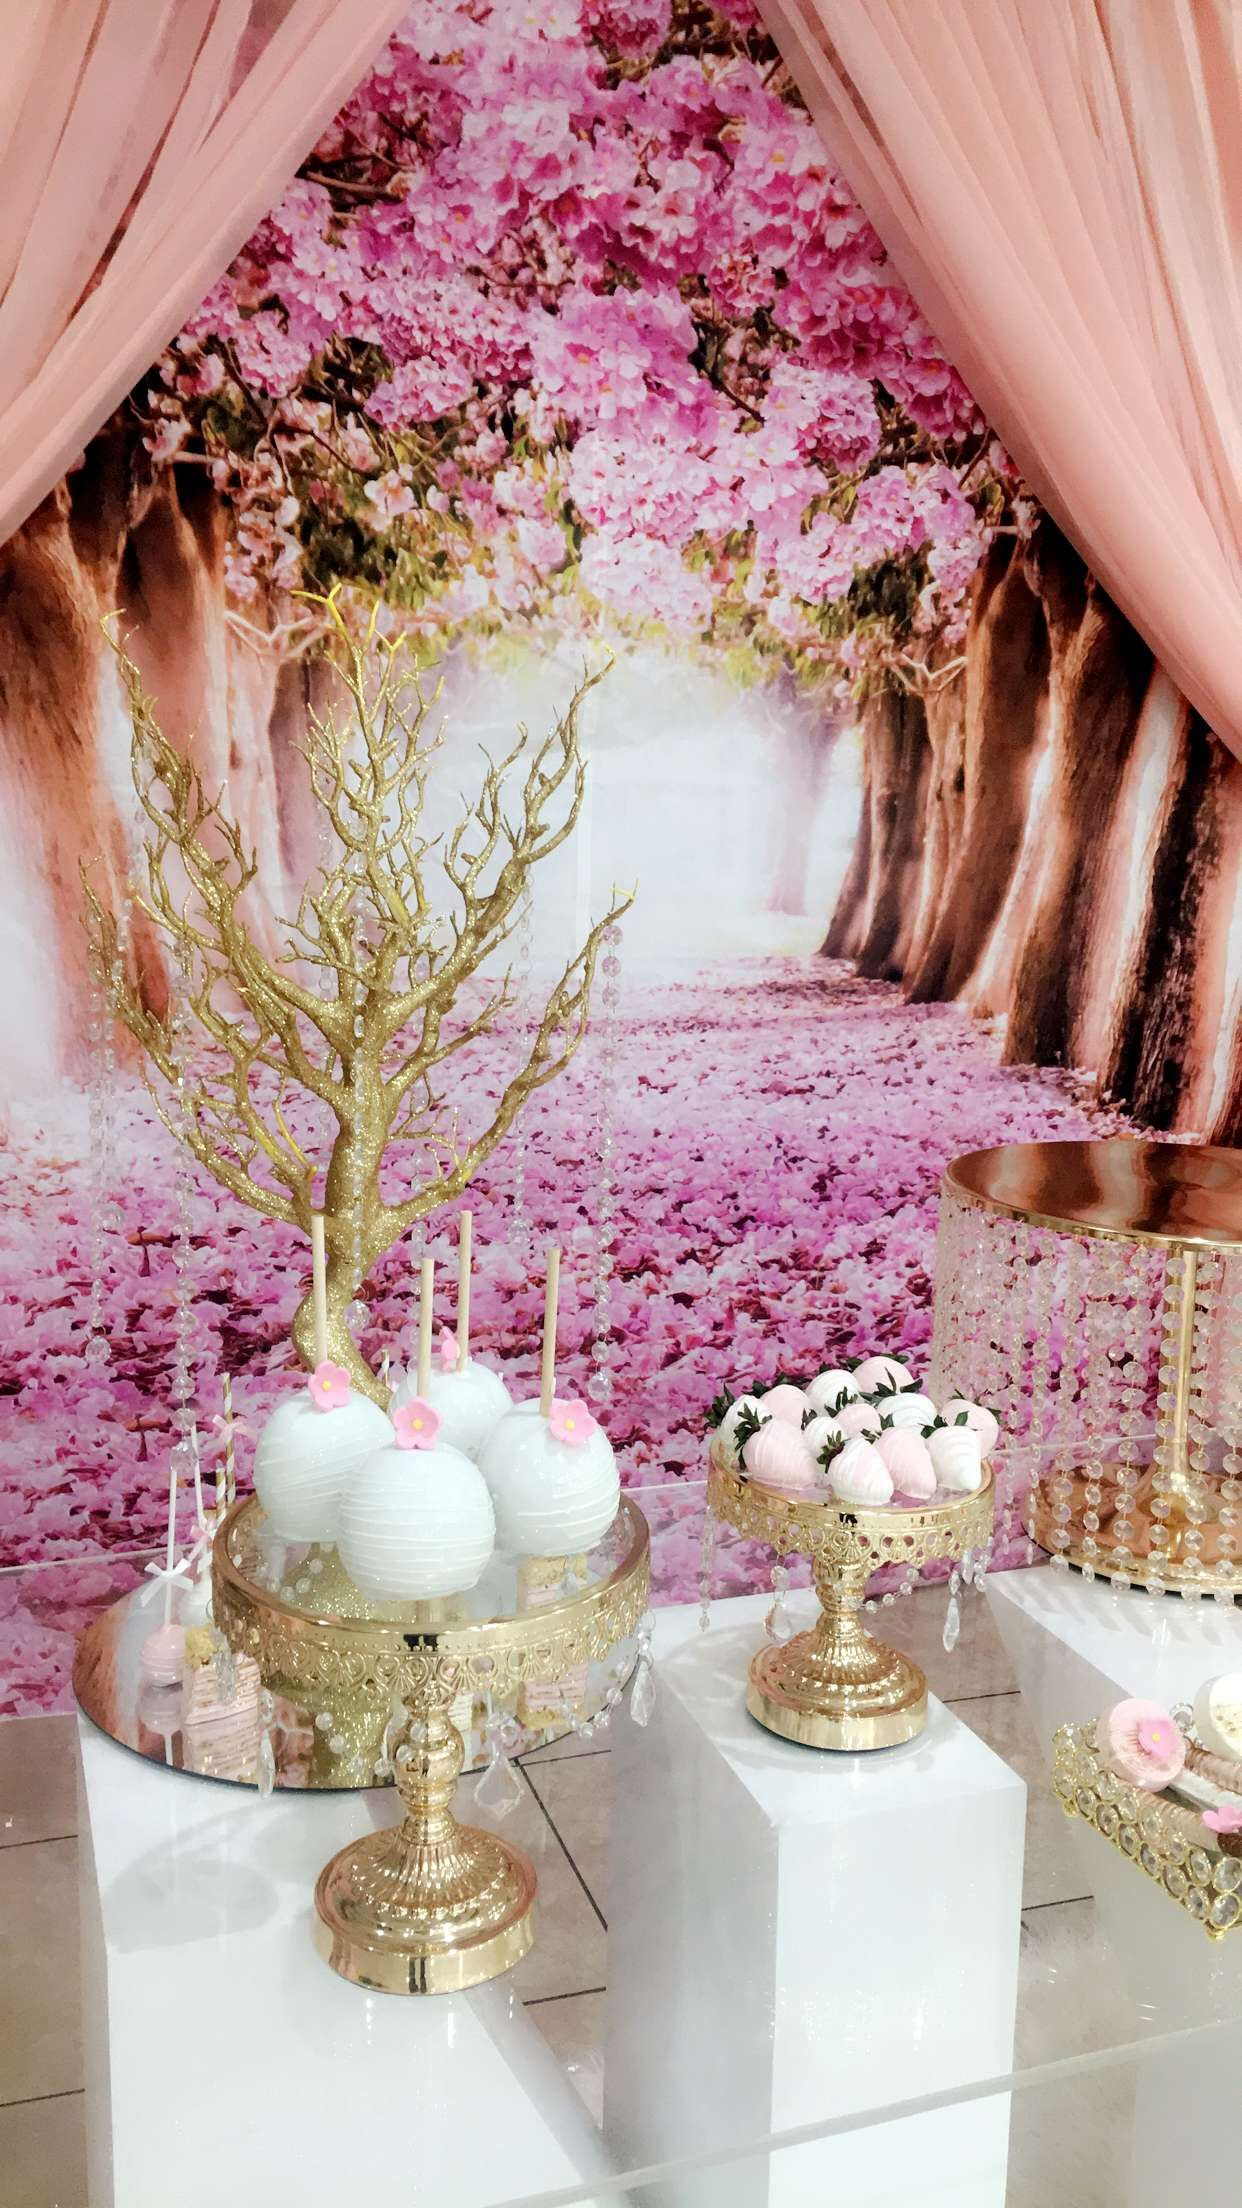 Pin By Wandaseventdesigns On Cherry Blossom Sweet 16 Table Decorations Decor Cherry Blossom